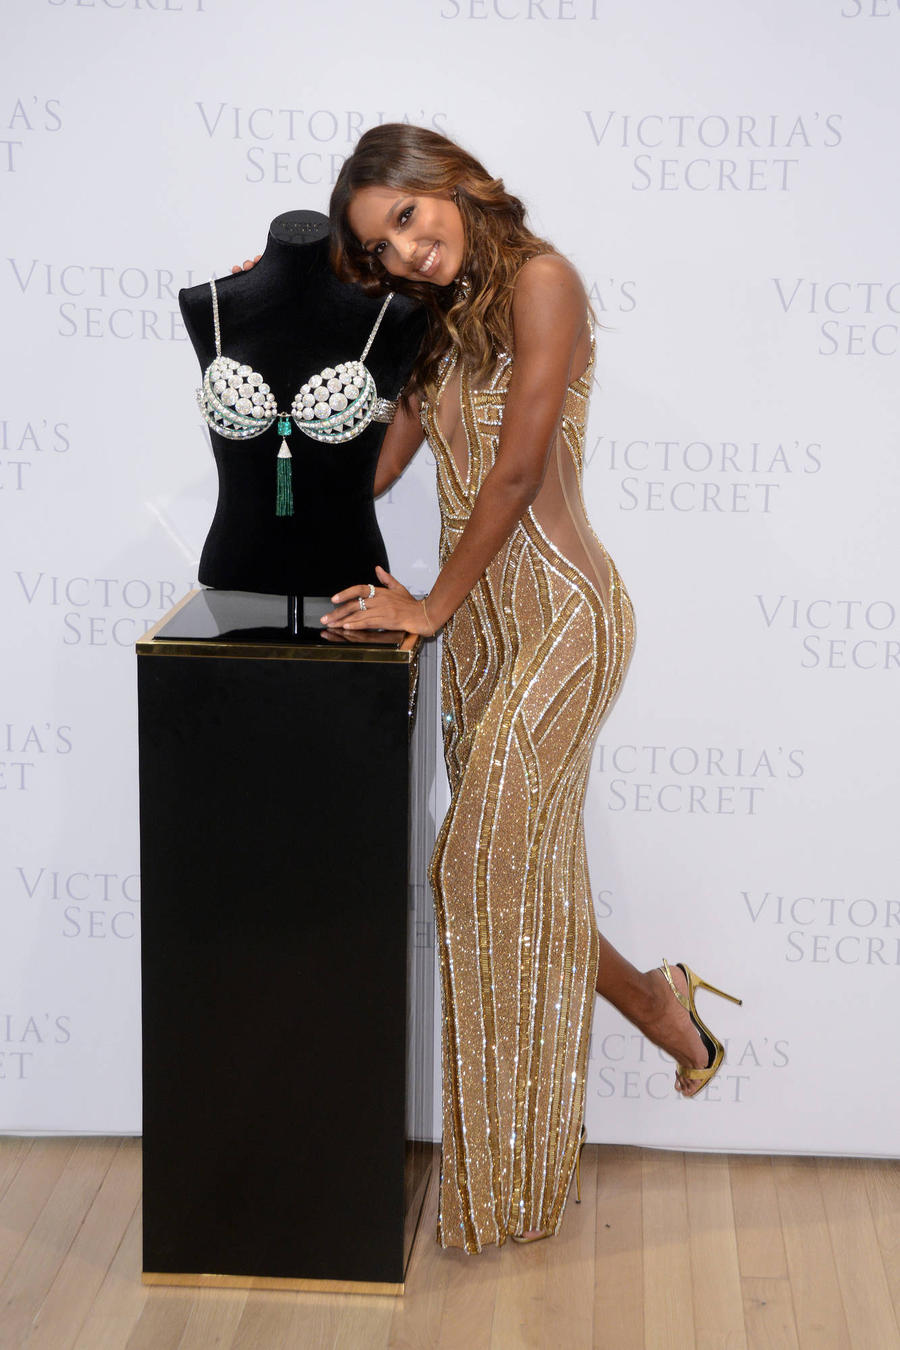 Jasmine Tookes To Wear Fantasy Bra At Victoria's Secret Fashion Show